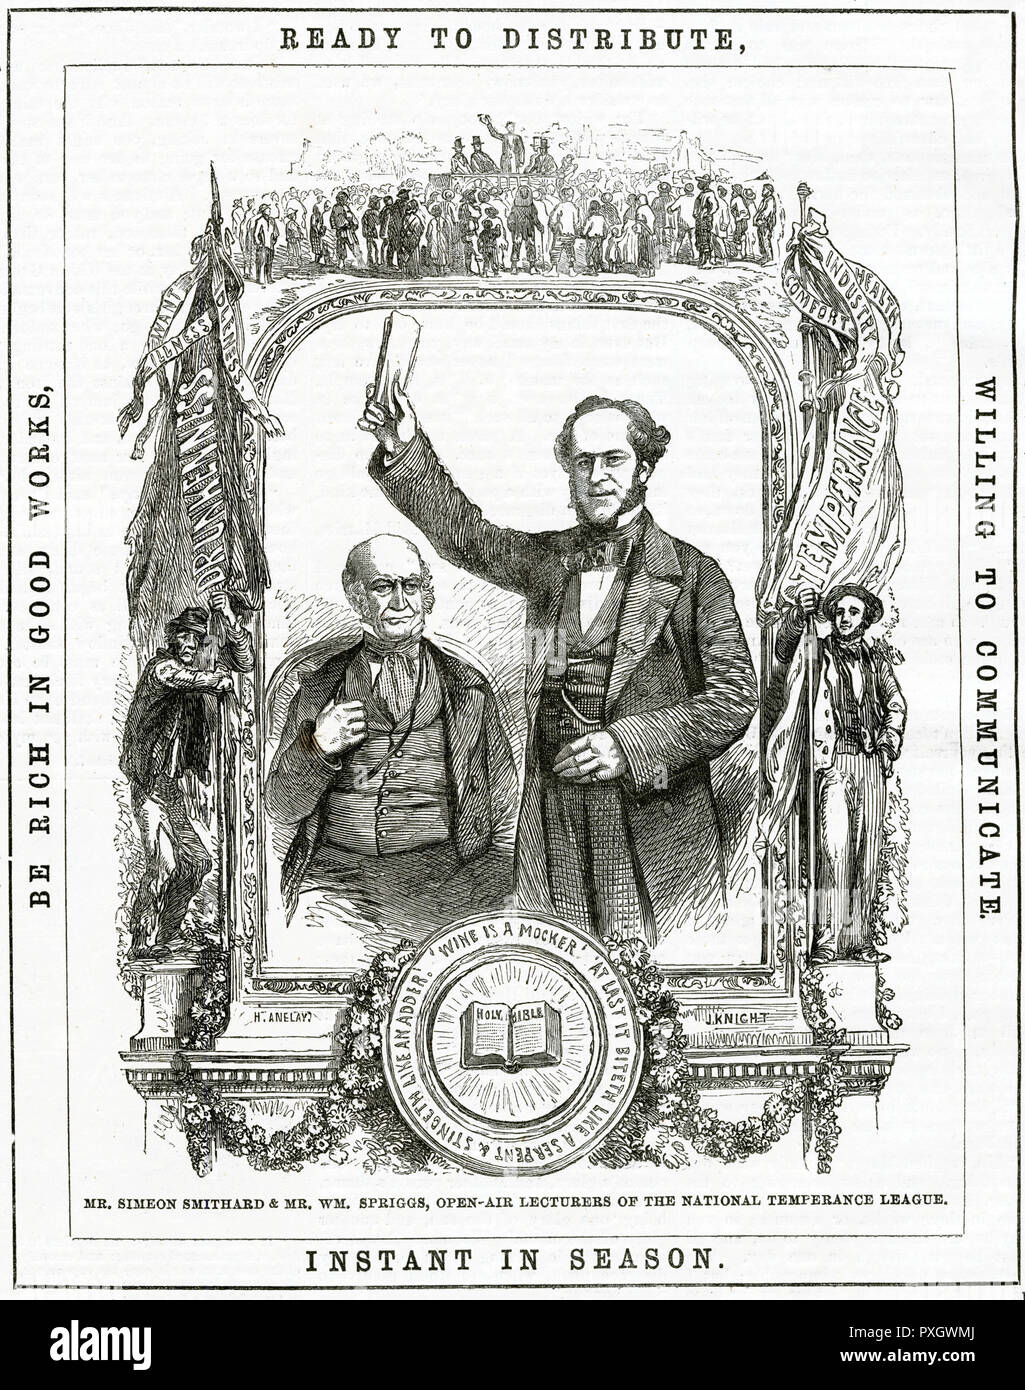 Christian men, Mr. Simeon Smithard and Mr. William Spriggs, open-air lecturers of the National Temperance League to the populous districts of London, reciting words from the Gospels.     Date: 1858 - Stock Image